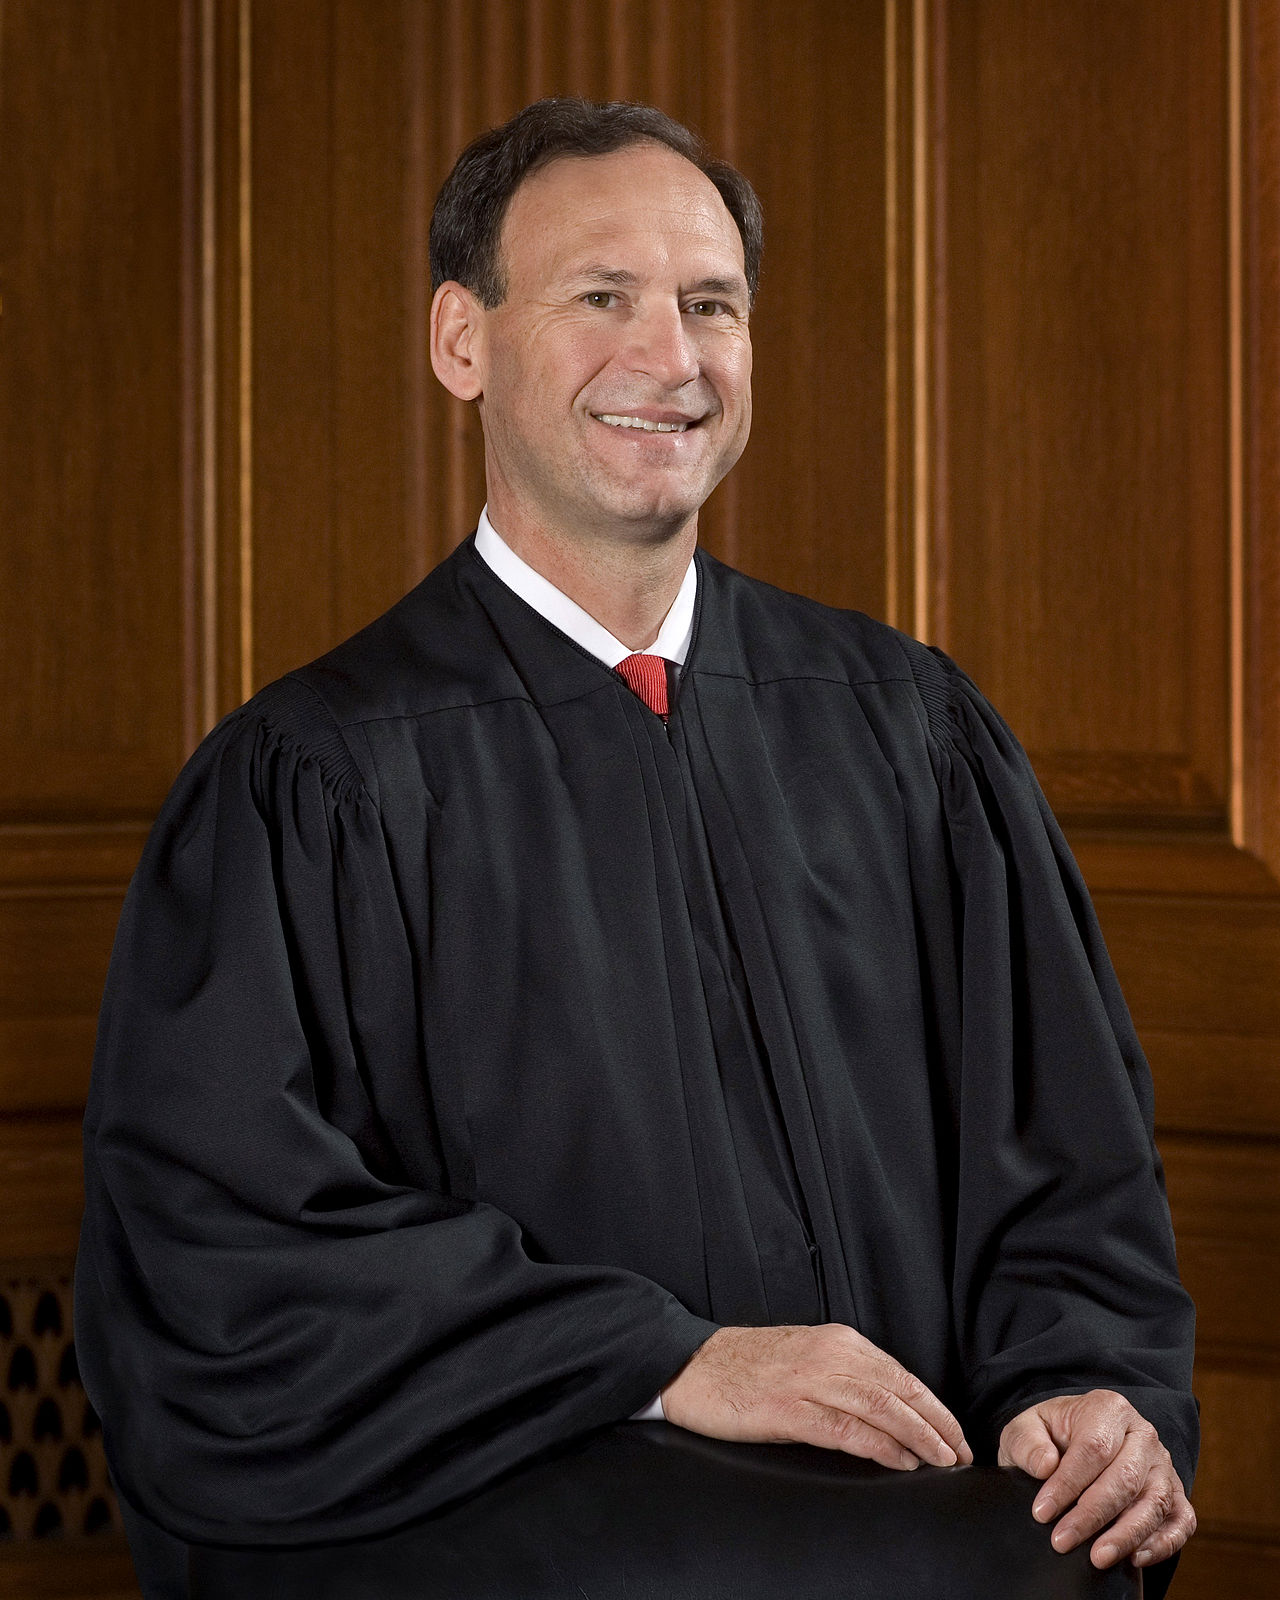 Justice Alito still isn't super sure about this whole birth control thing.